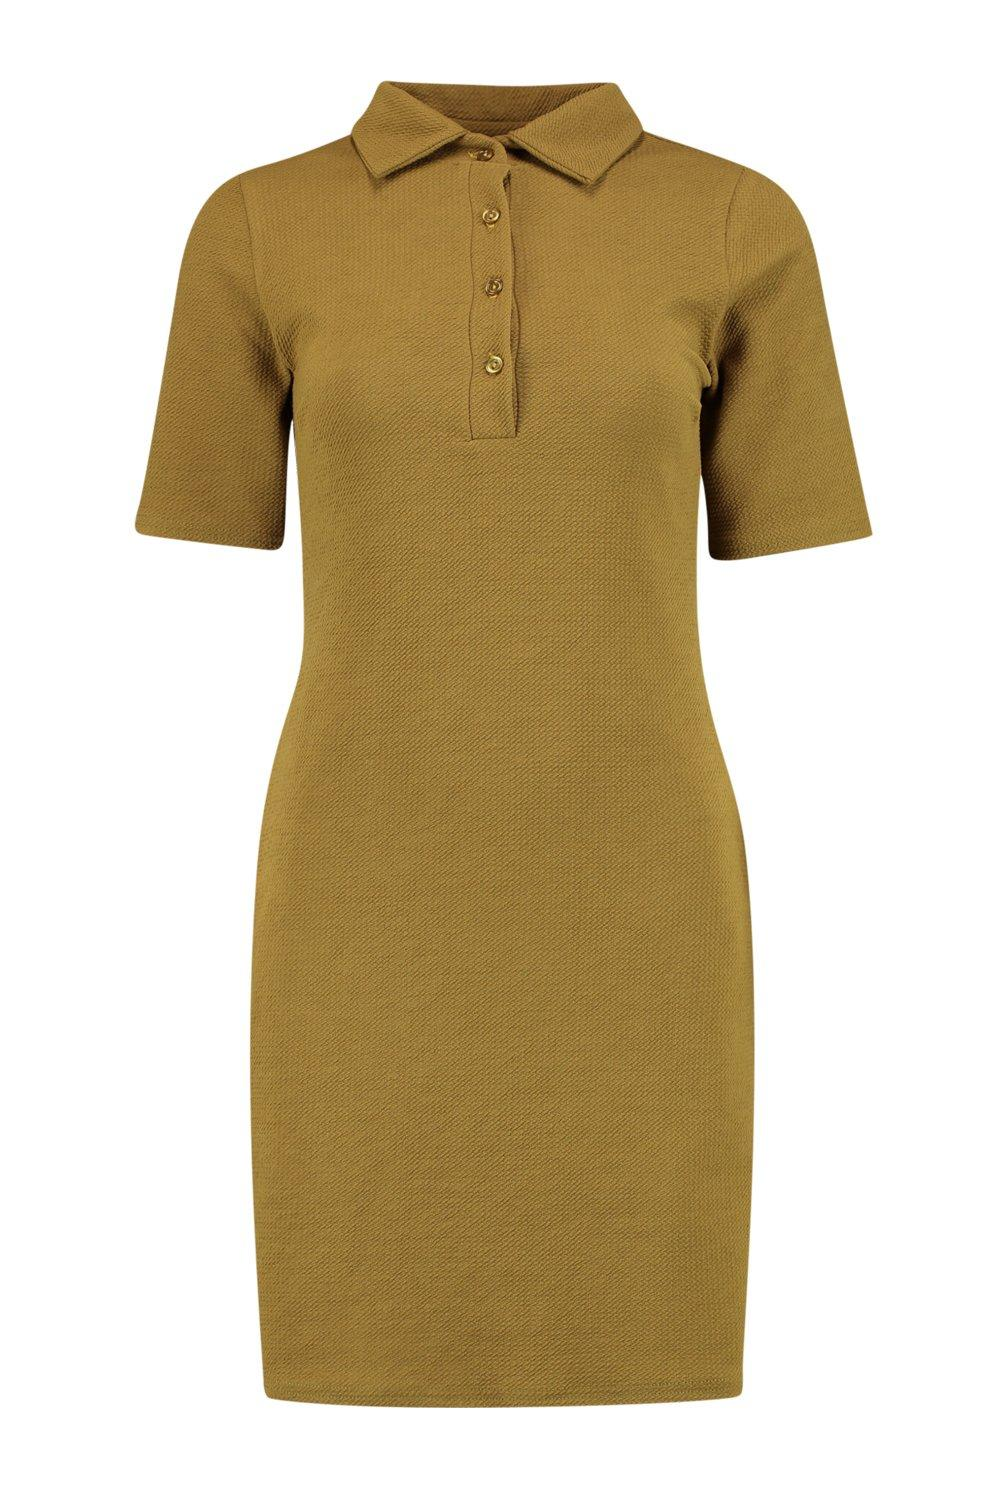 Boohoo Womens Carinna Polo Shirt Dress | eBay